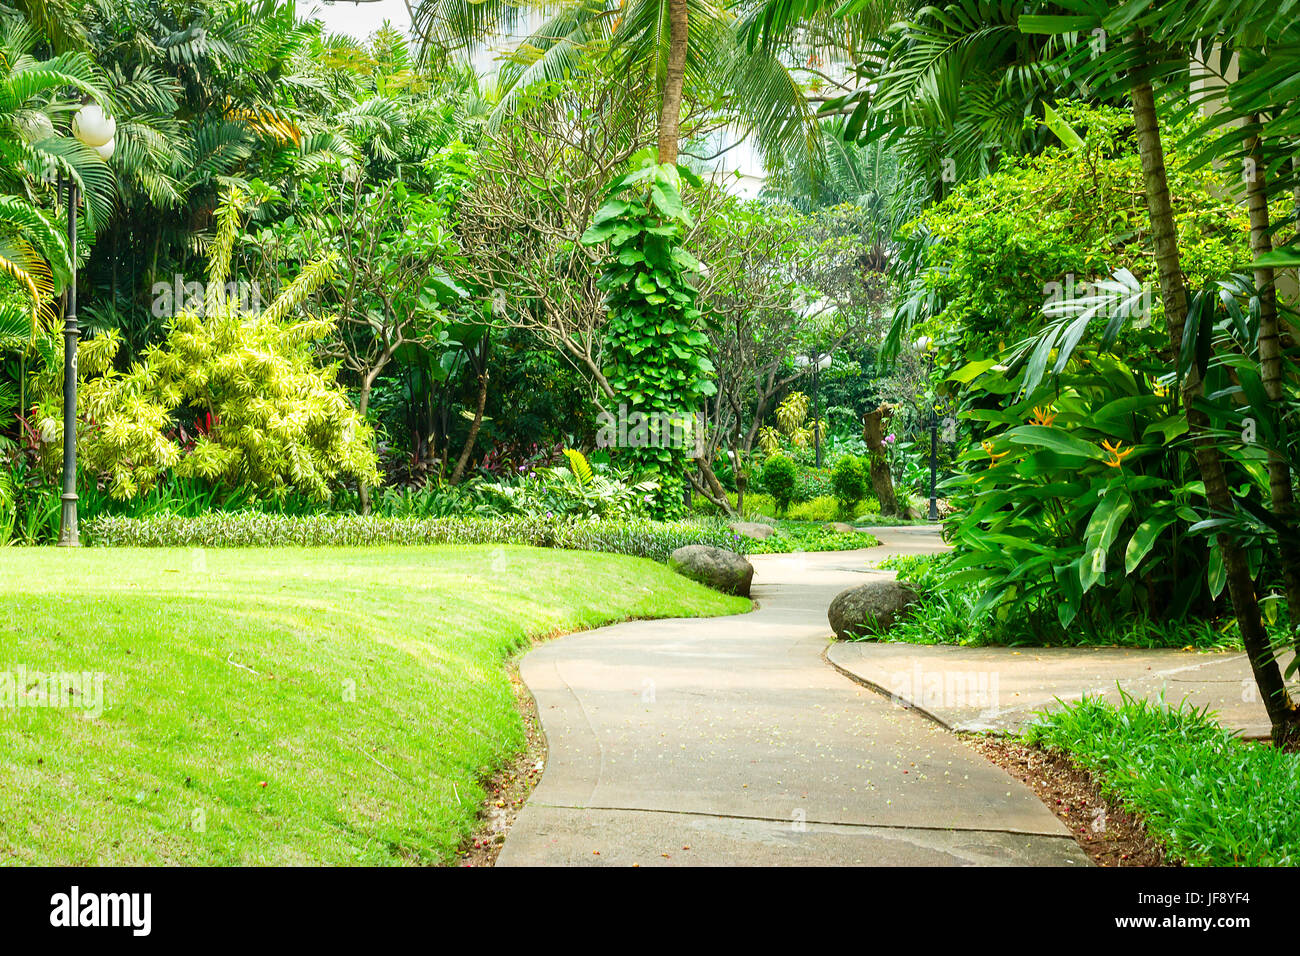 Beautiful green park with concrete winding path for pedestrians. The park is full of various tropical plants from - Stock Image